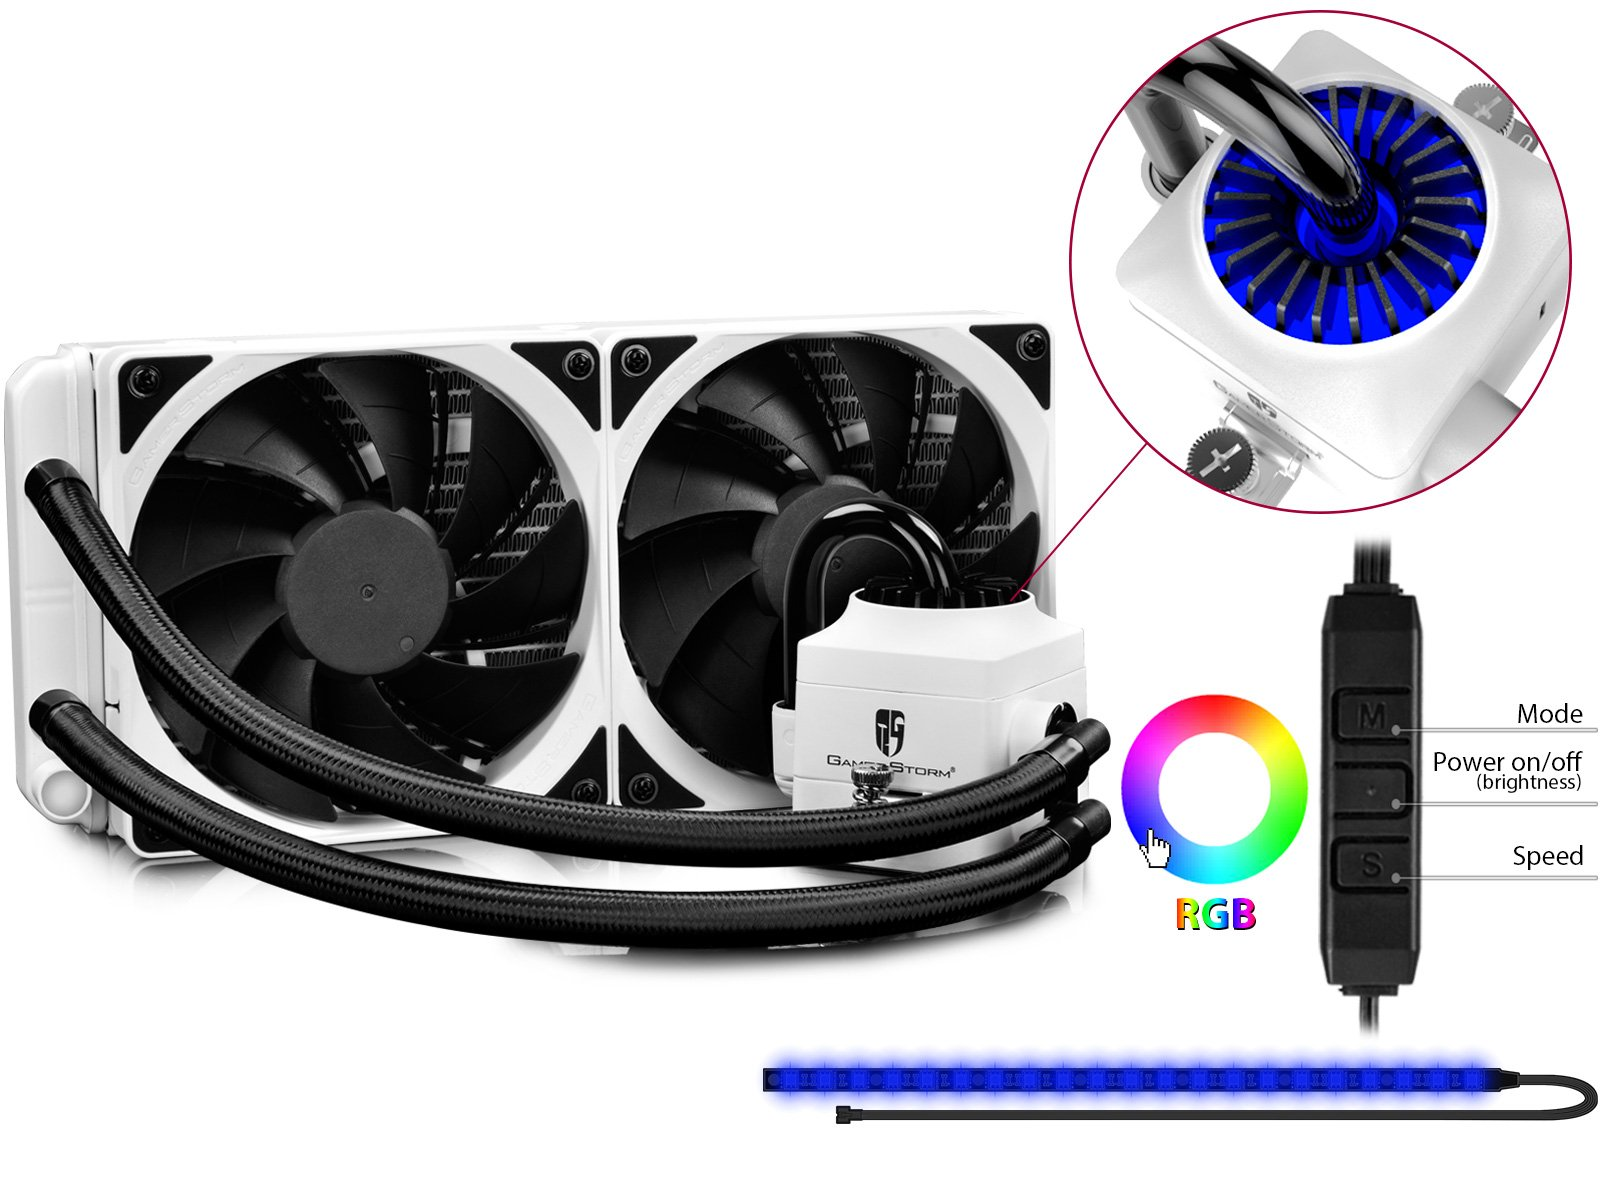 DEEPCOOL CAPTAIN 240EX RGB White CPU Water Cooling System CPU Cooler with RGB Lighting Pump and Strip, 2×120mm Dual-fan Radiator, AM4 Compatible, 3-year Warranty by DEEPCOOL